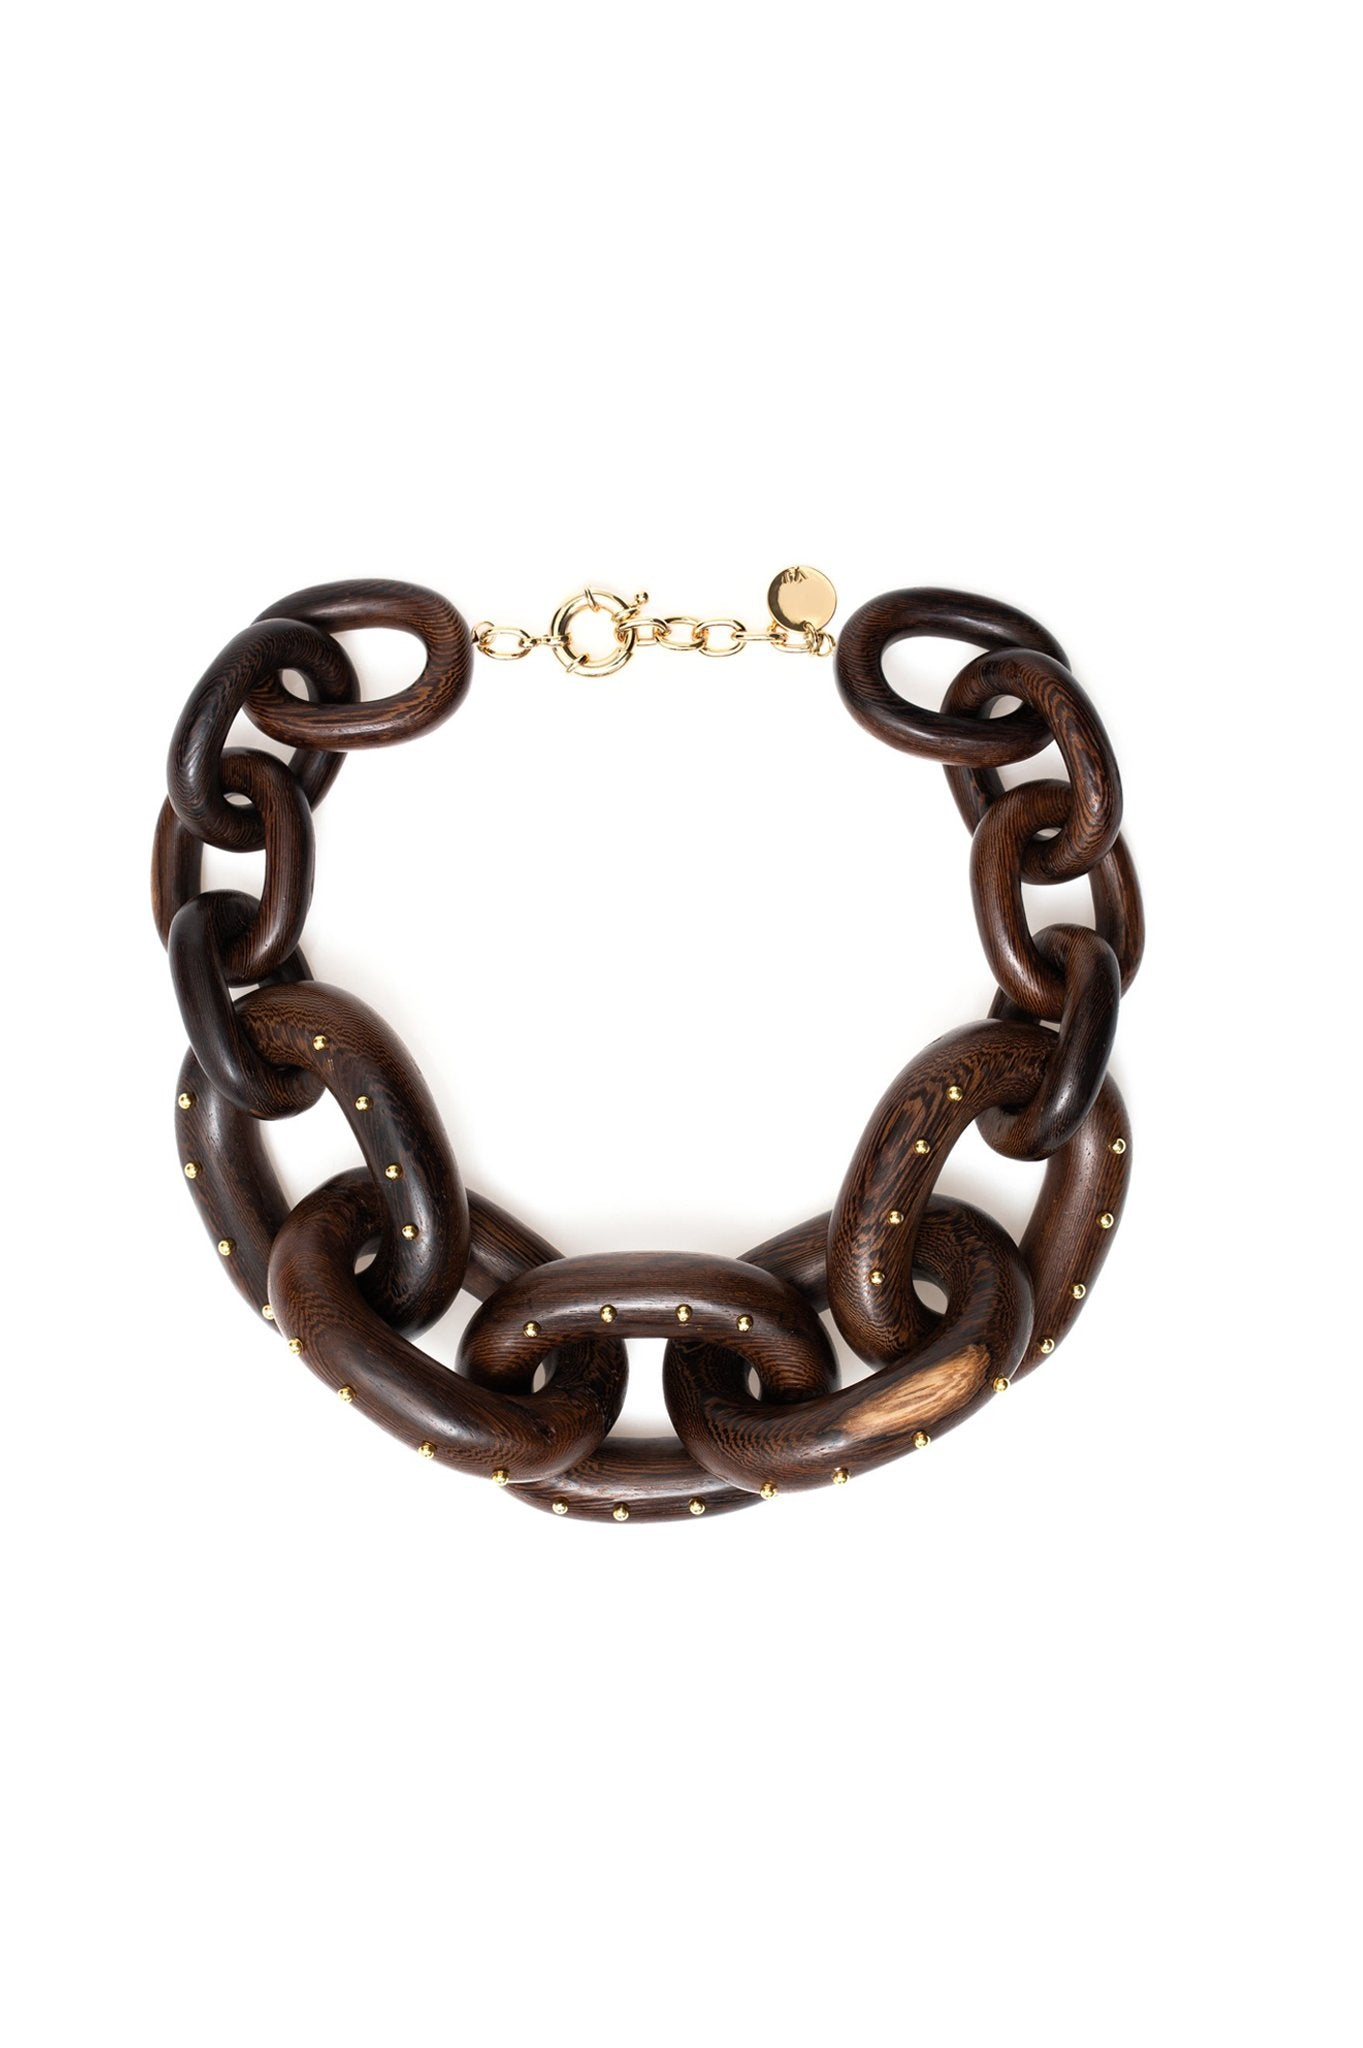 WOOD CHAIN CHOKER